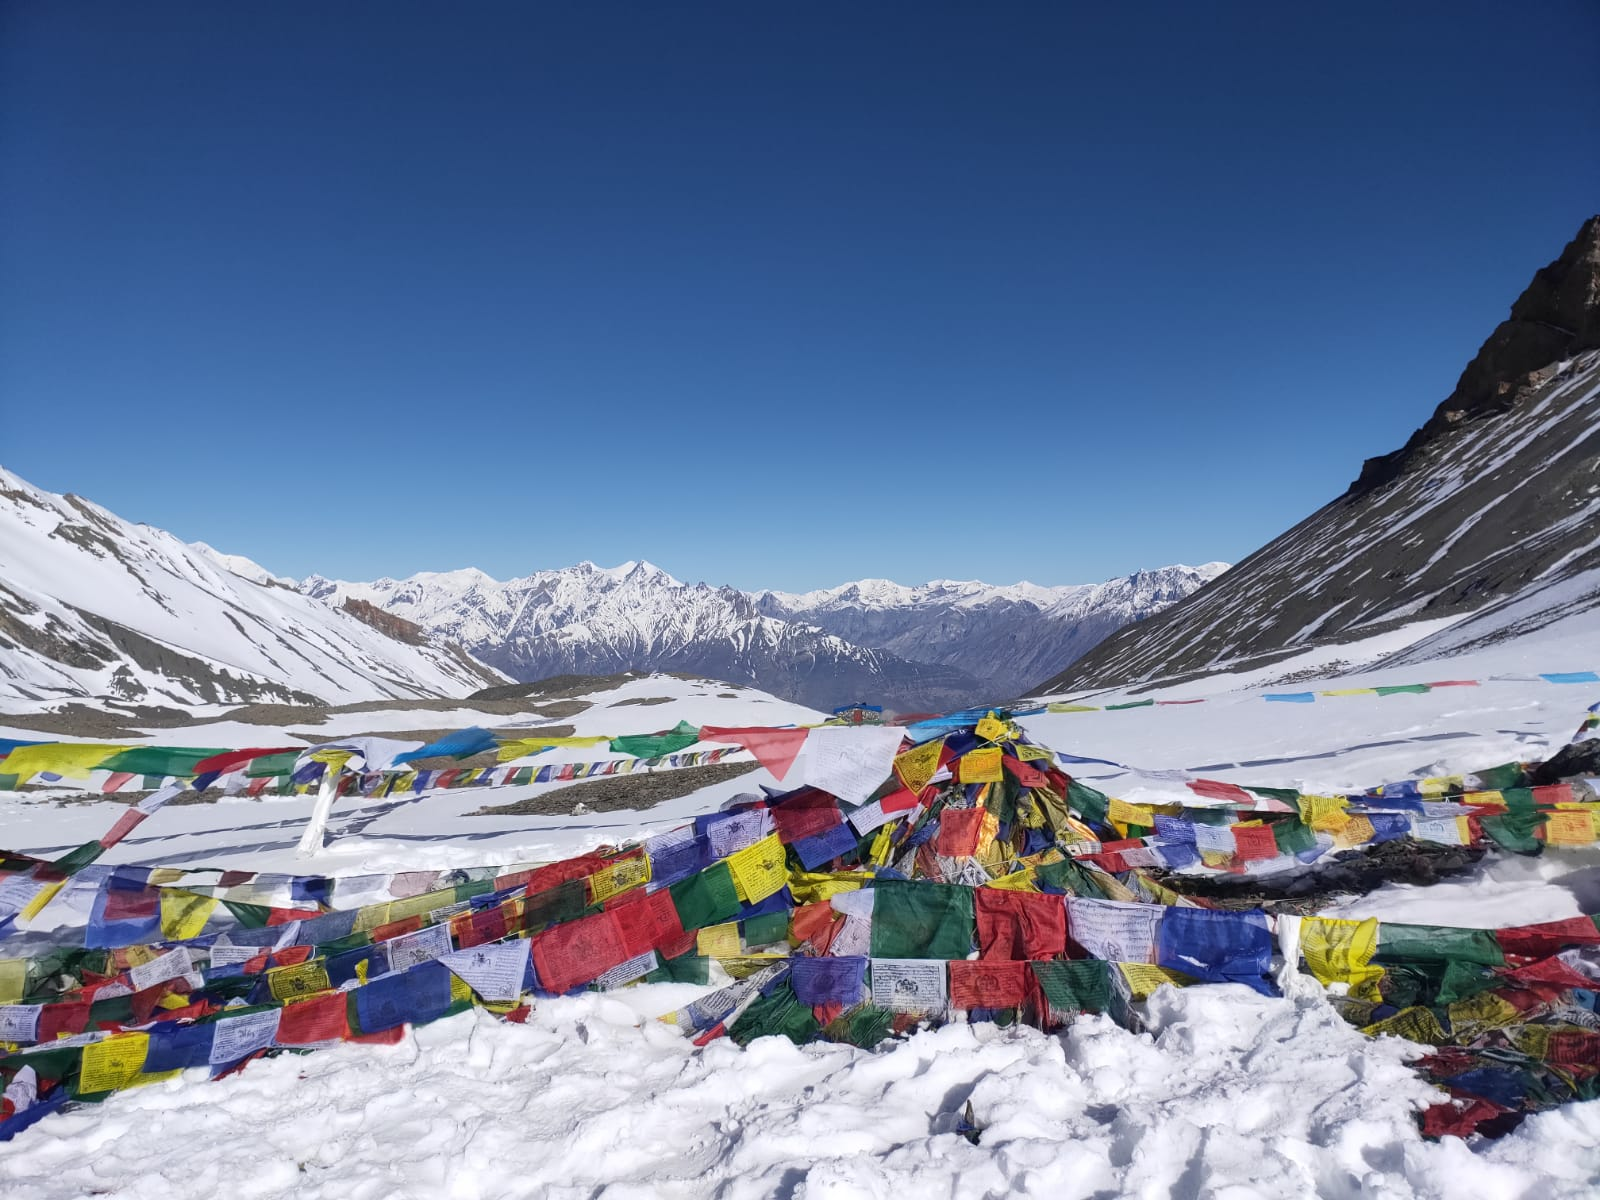 Thorong-La Pass prayer flags in the snow with mountains in the background